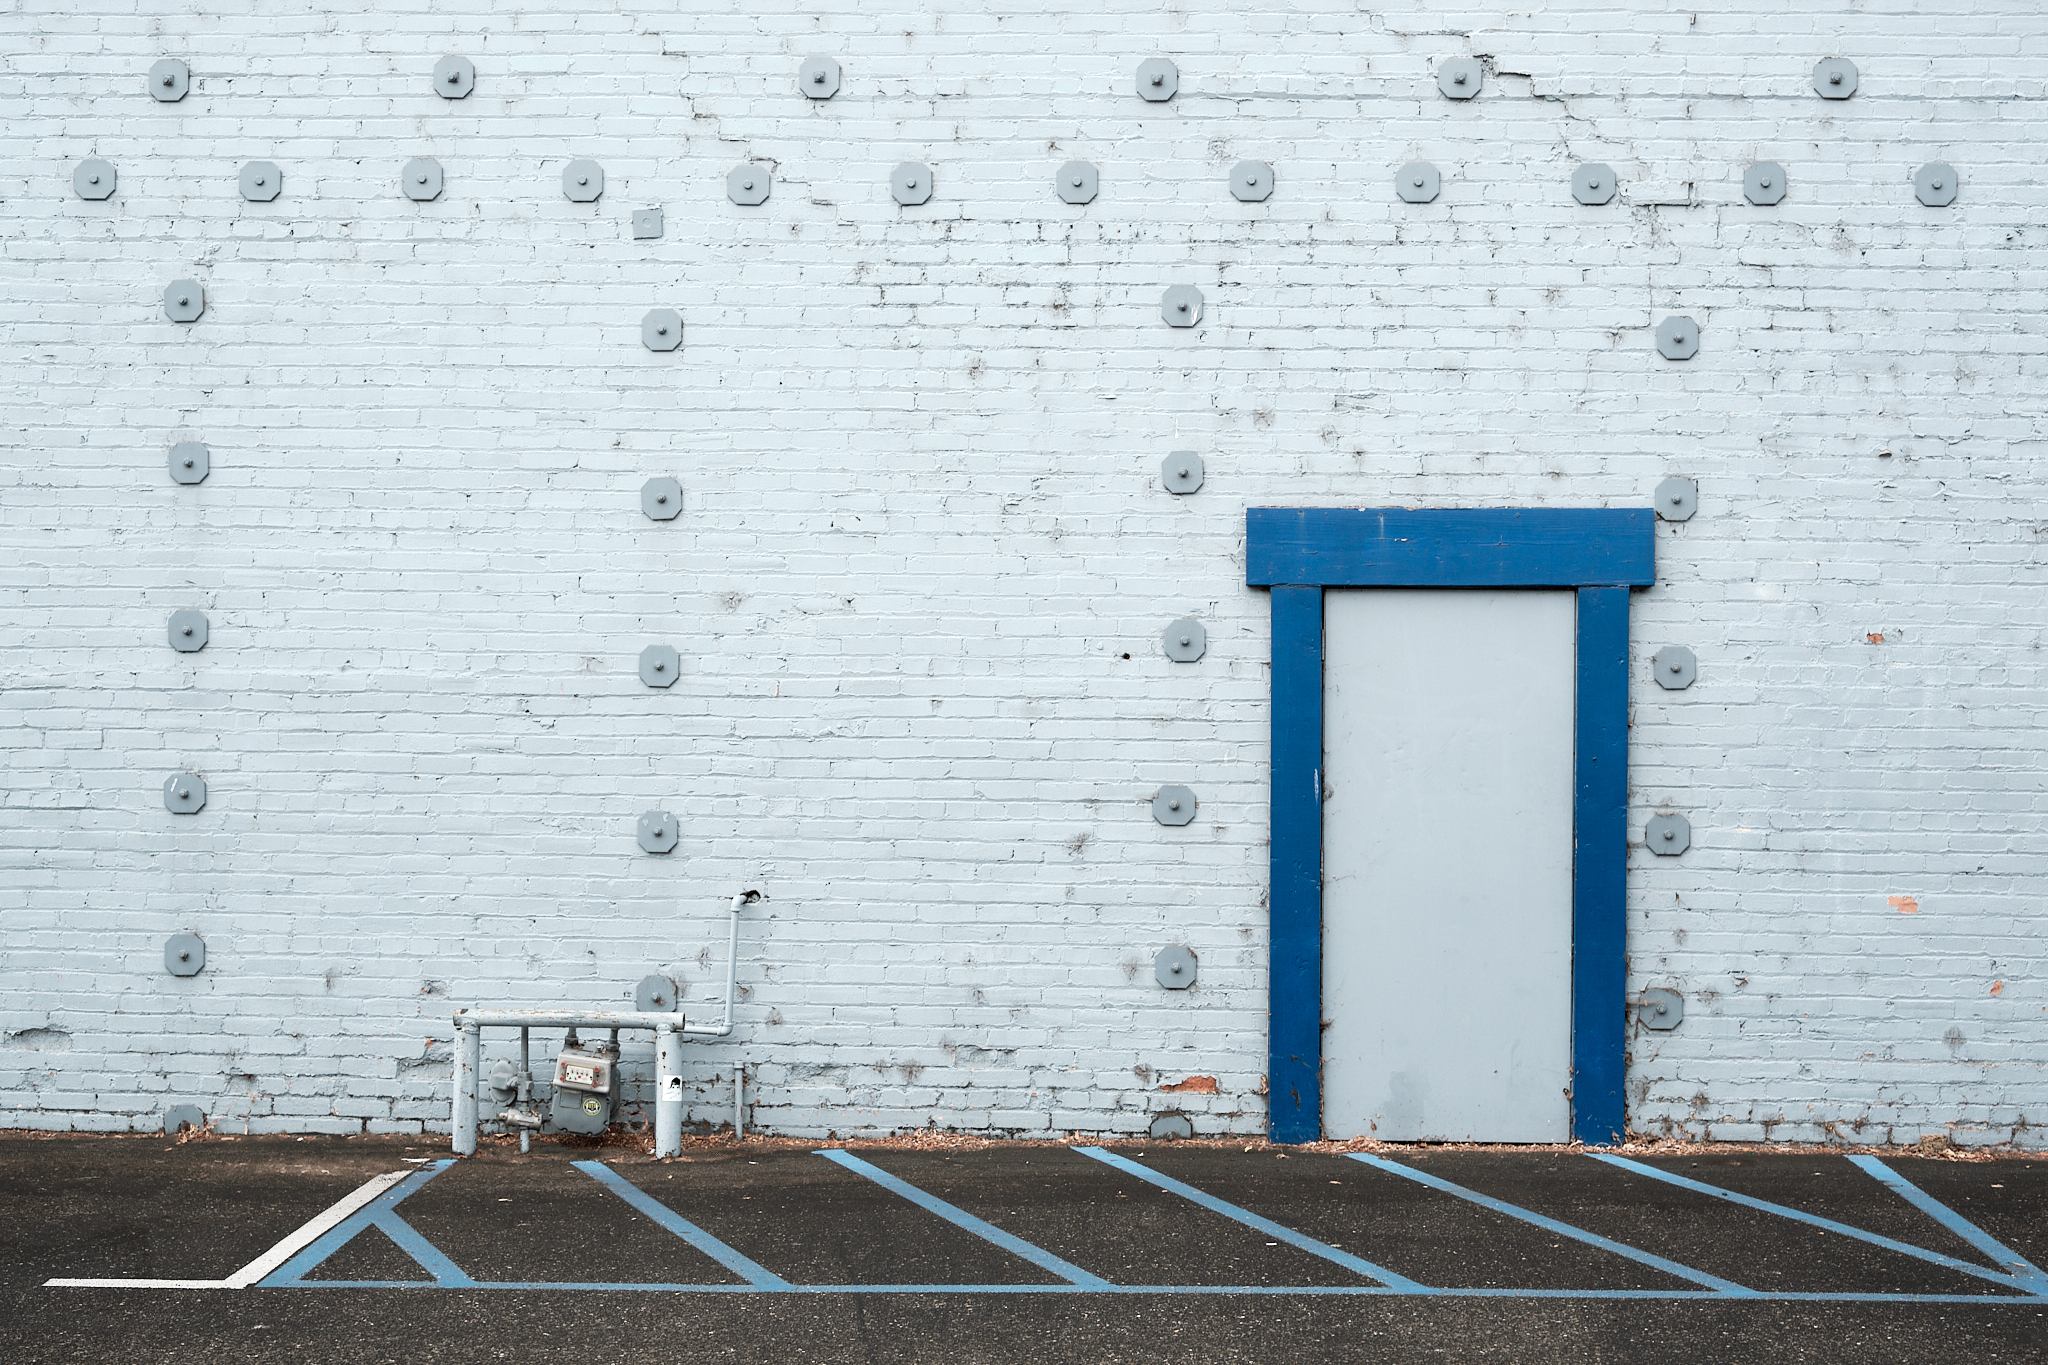 Photograph of door with blue frame and brick wall